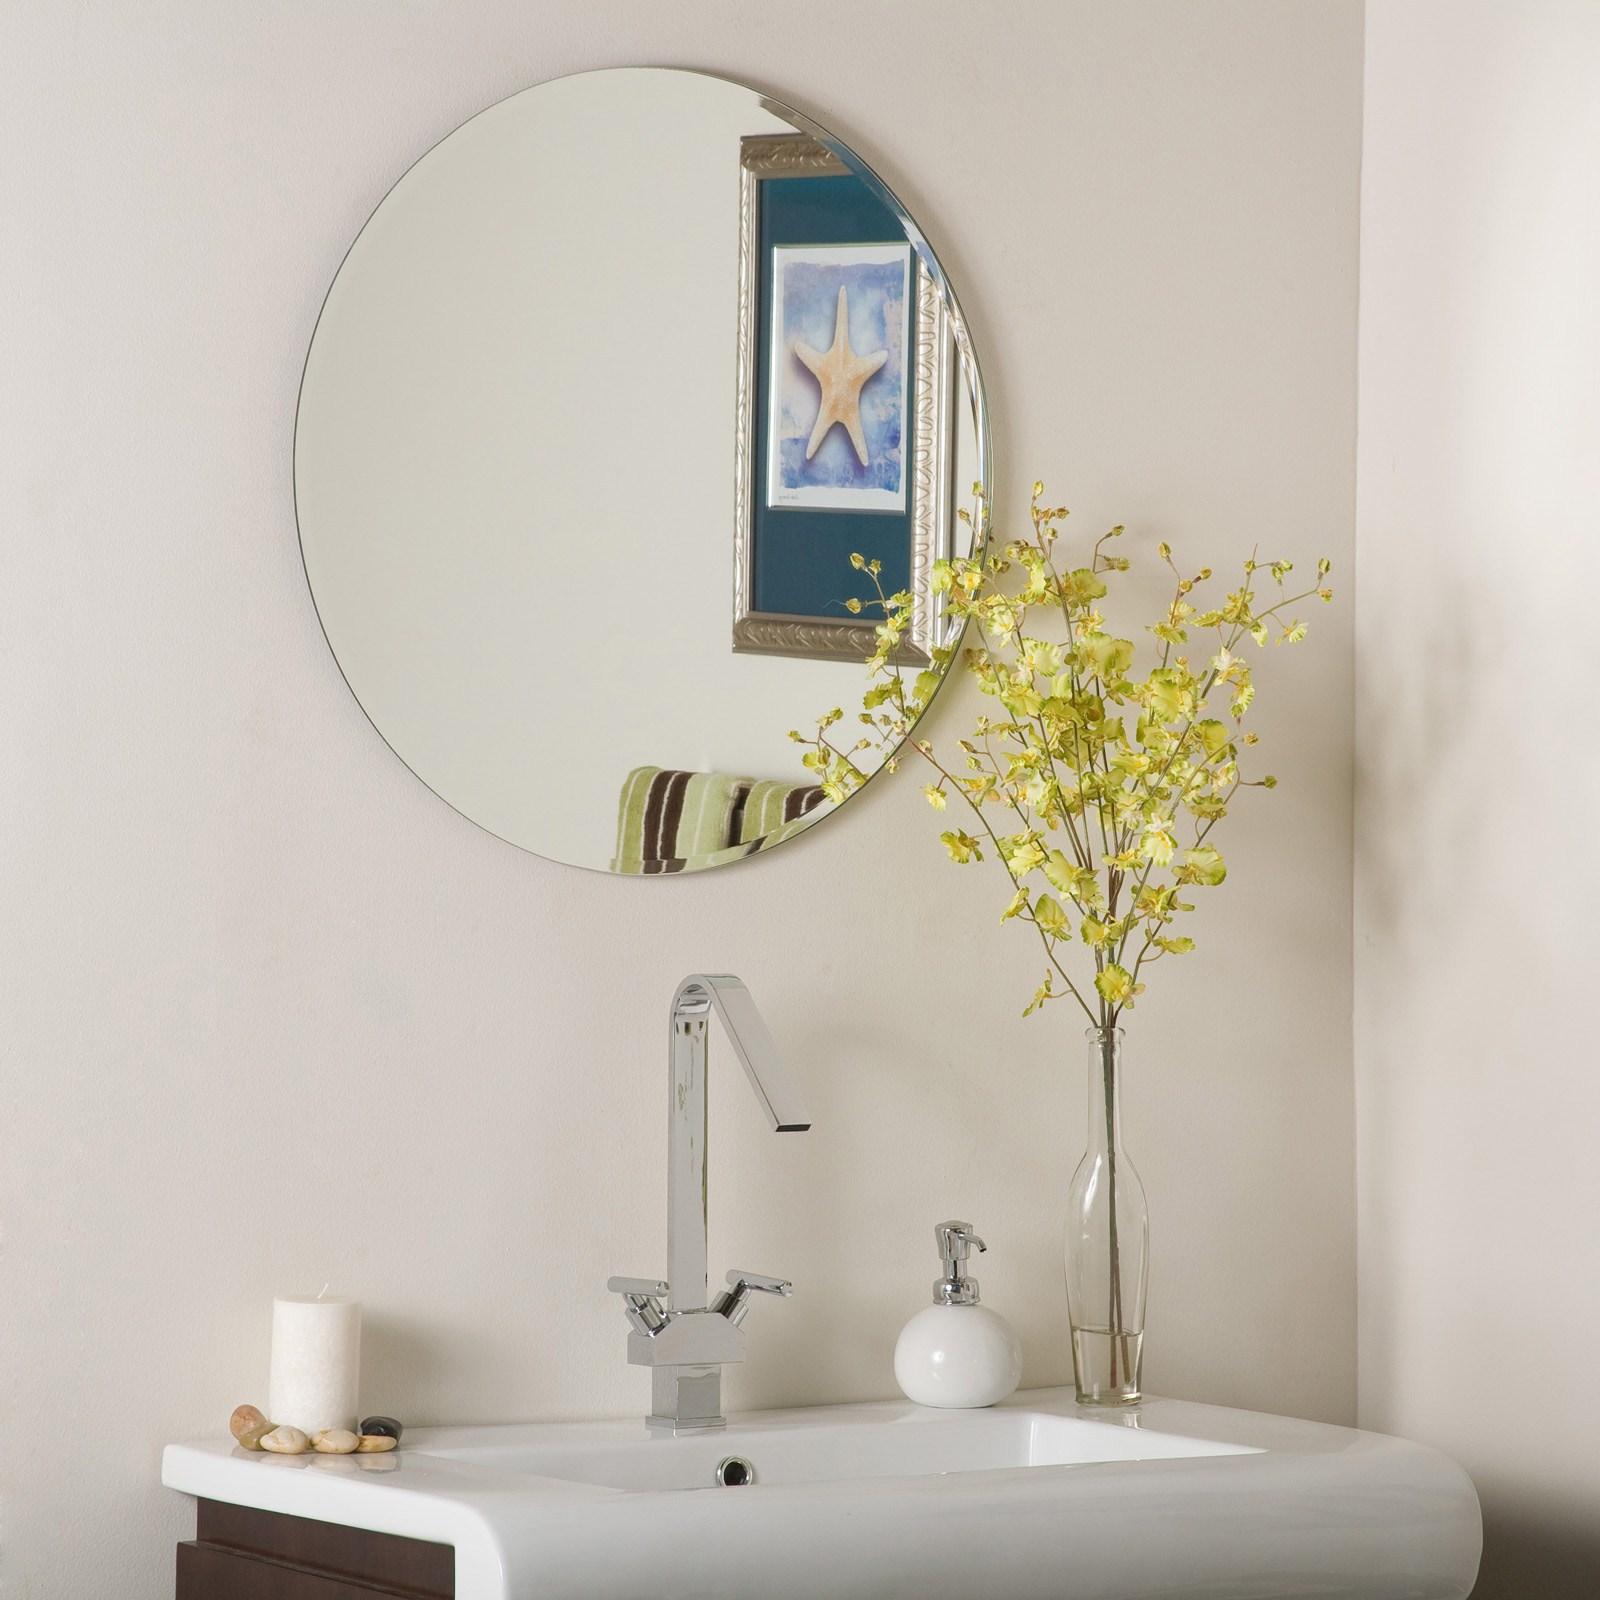 frameless mirrors for bathrooms. Beveled Bathroom Vanity Mirrors. Frameless, Frameless Round Mirror Mirrors R For Bathrooms T